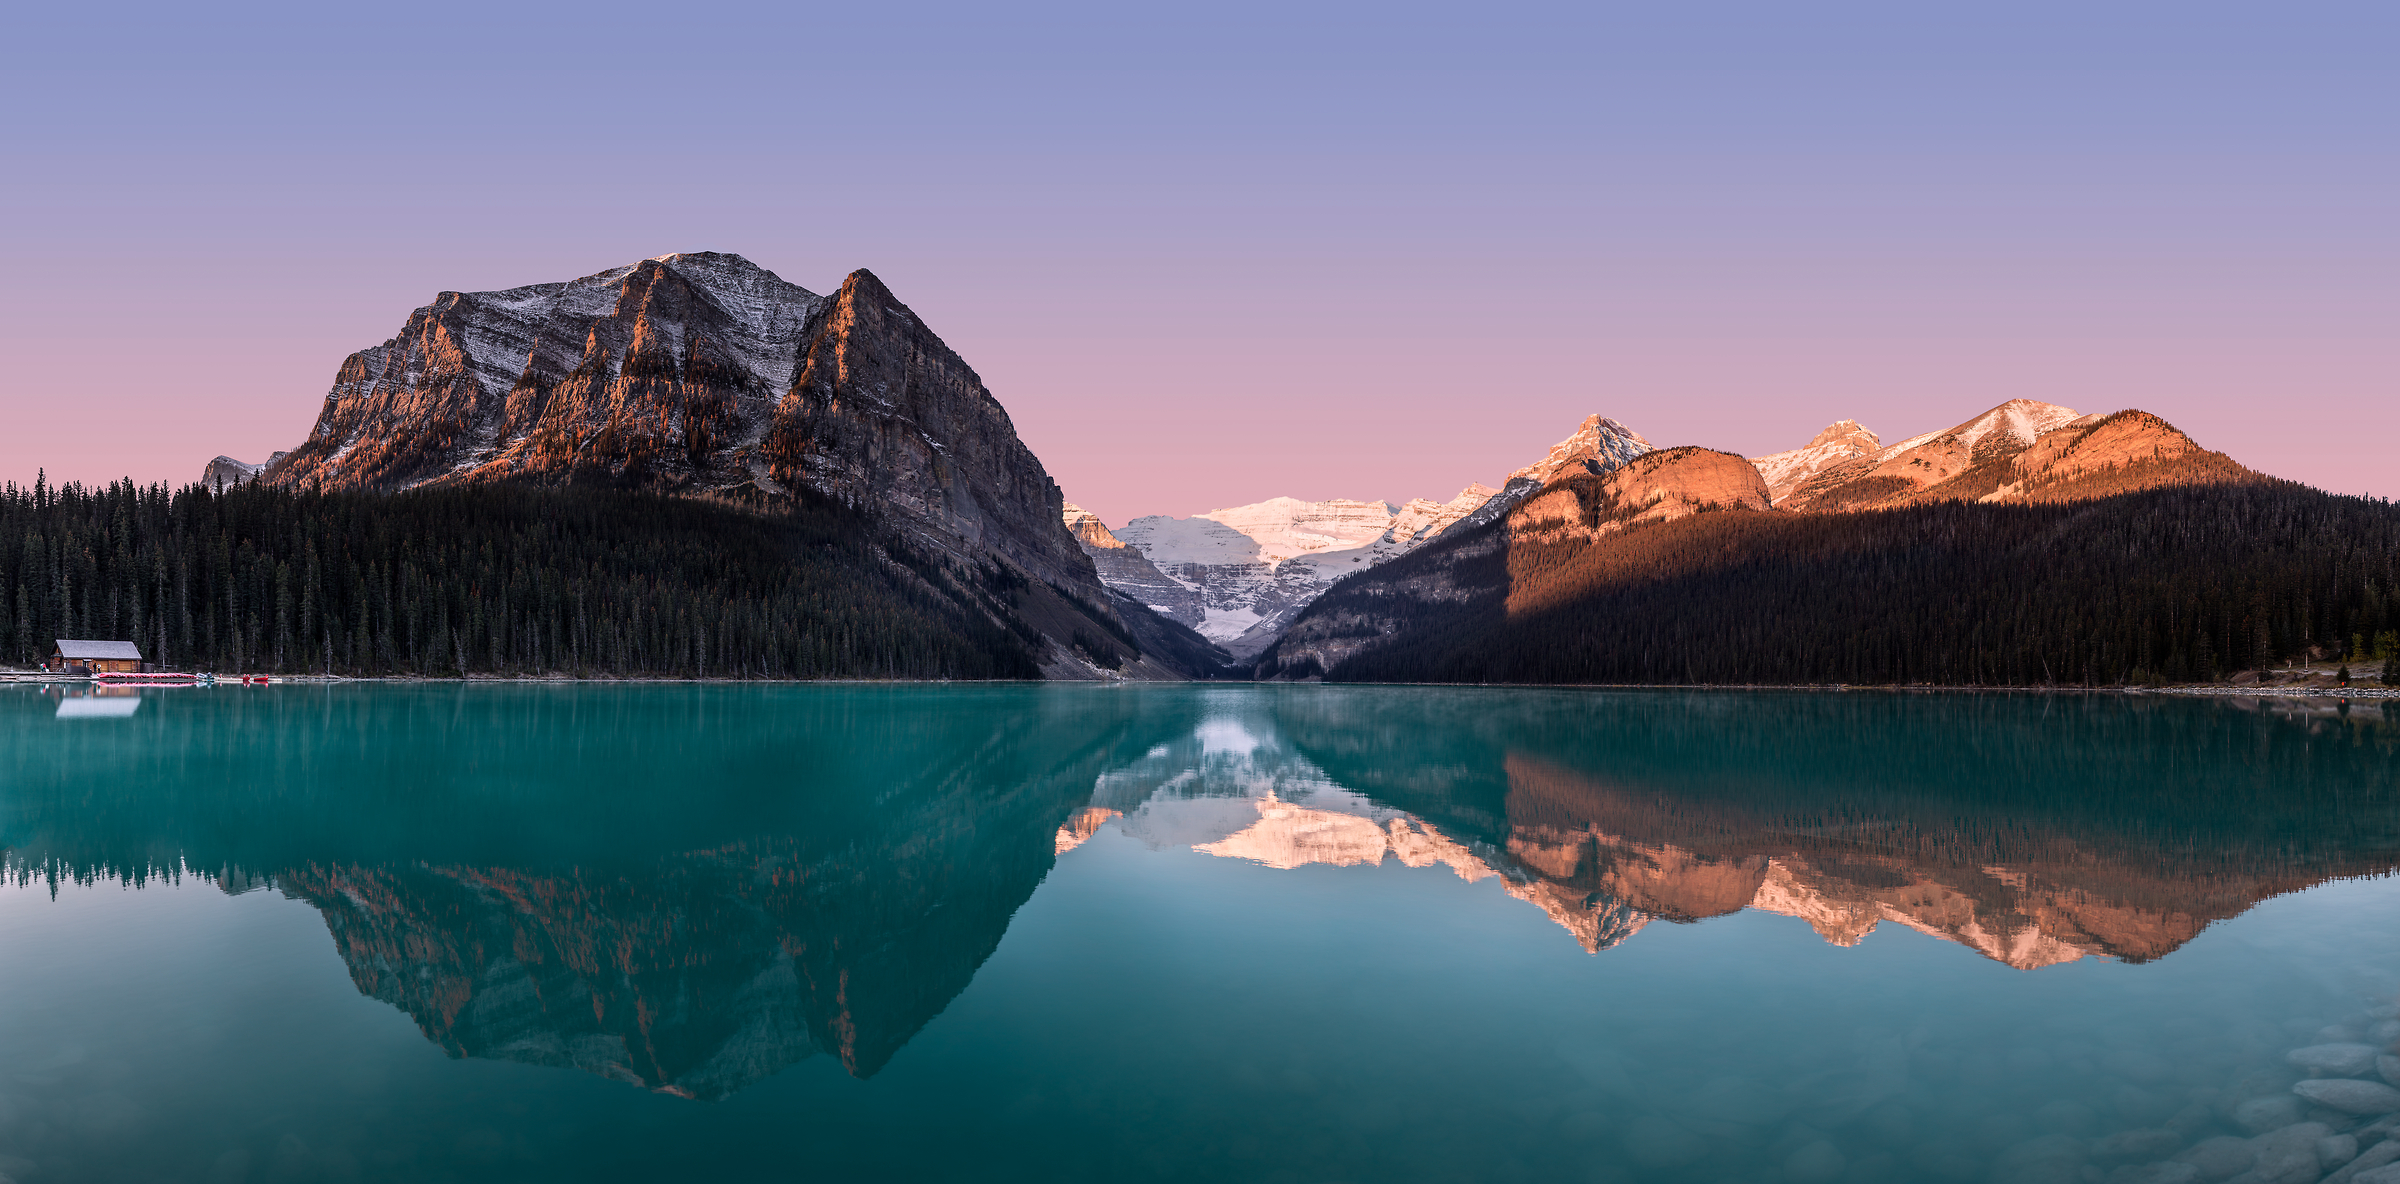 509 megapixels! A very high resolution, large-format VAST photo print of mountains and lakes, and Lake Louise; fine art landscape photo created by Chris Collacott in Banff National Park, Alberta, Canada